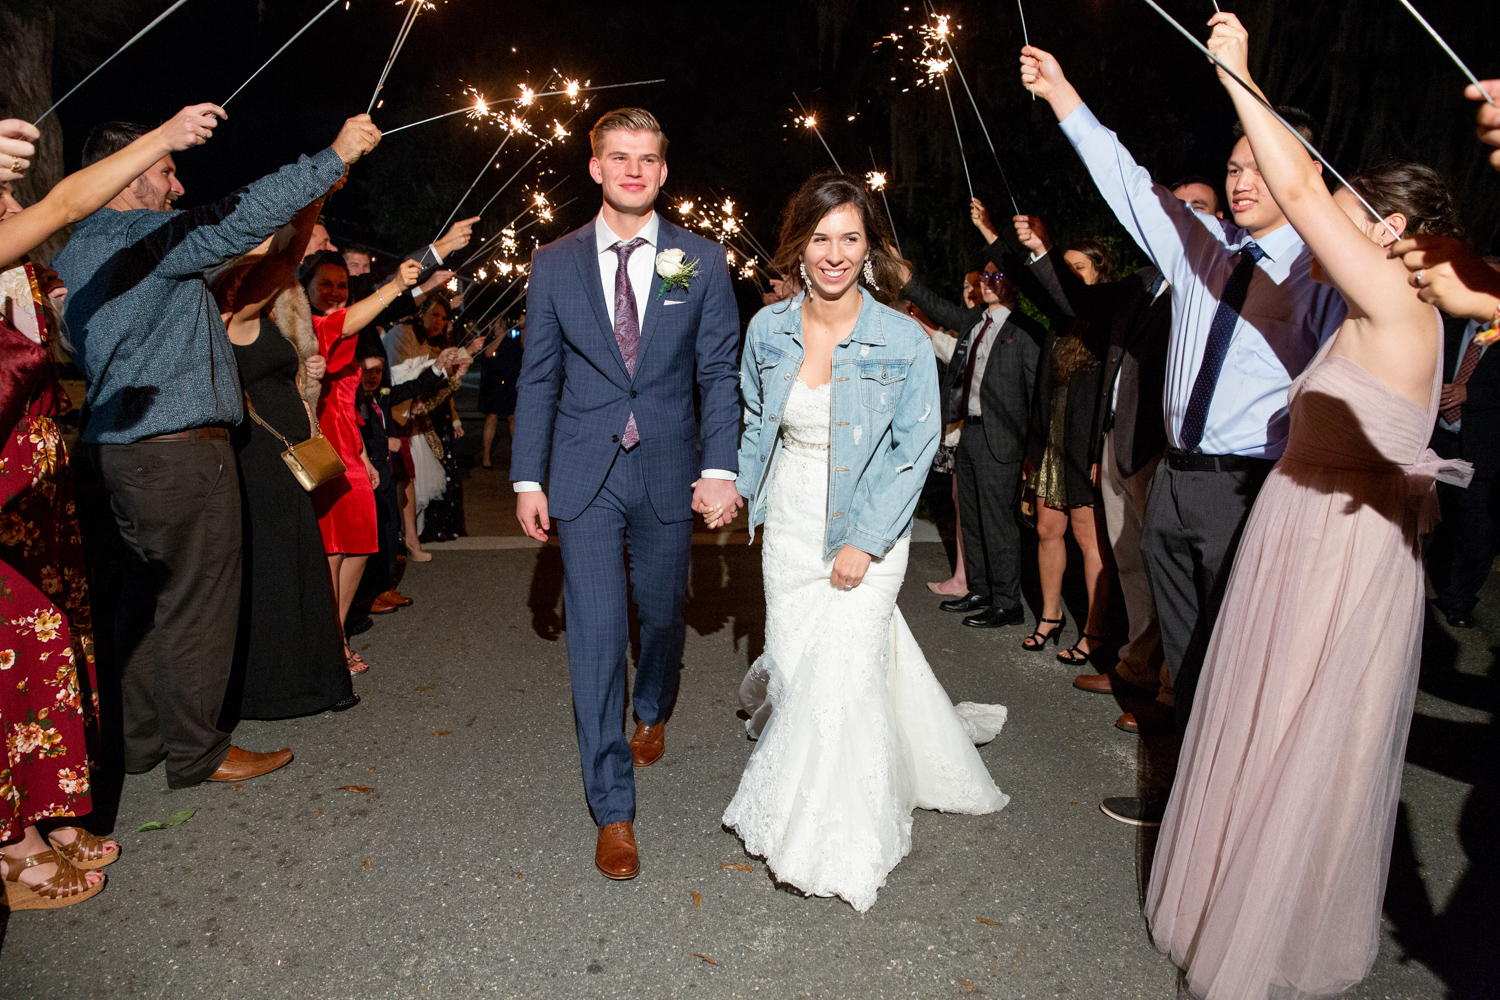 a young couple at their reception walking between  2 rows of guests holding sparklers aloft